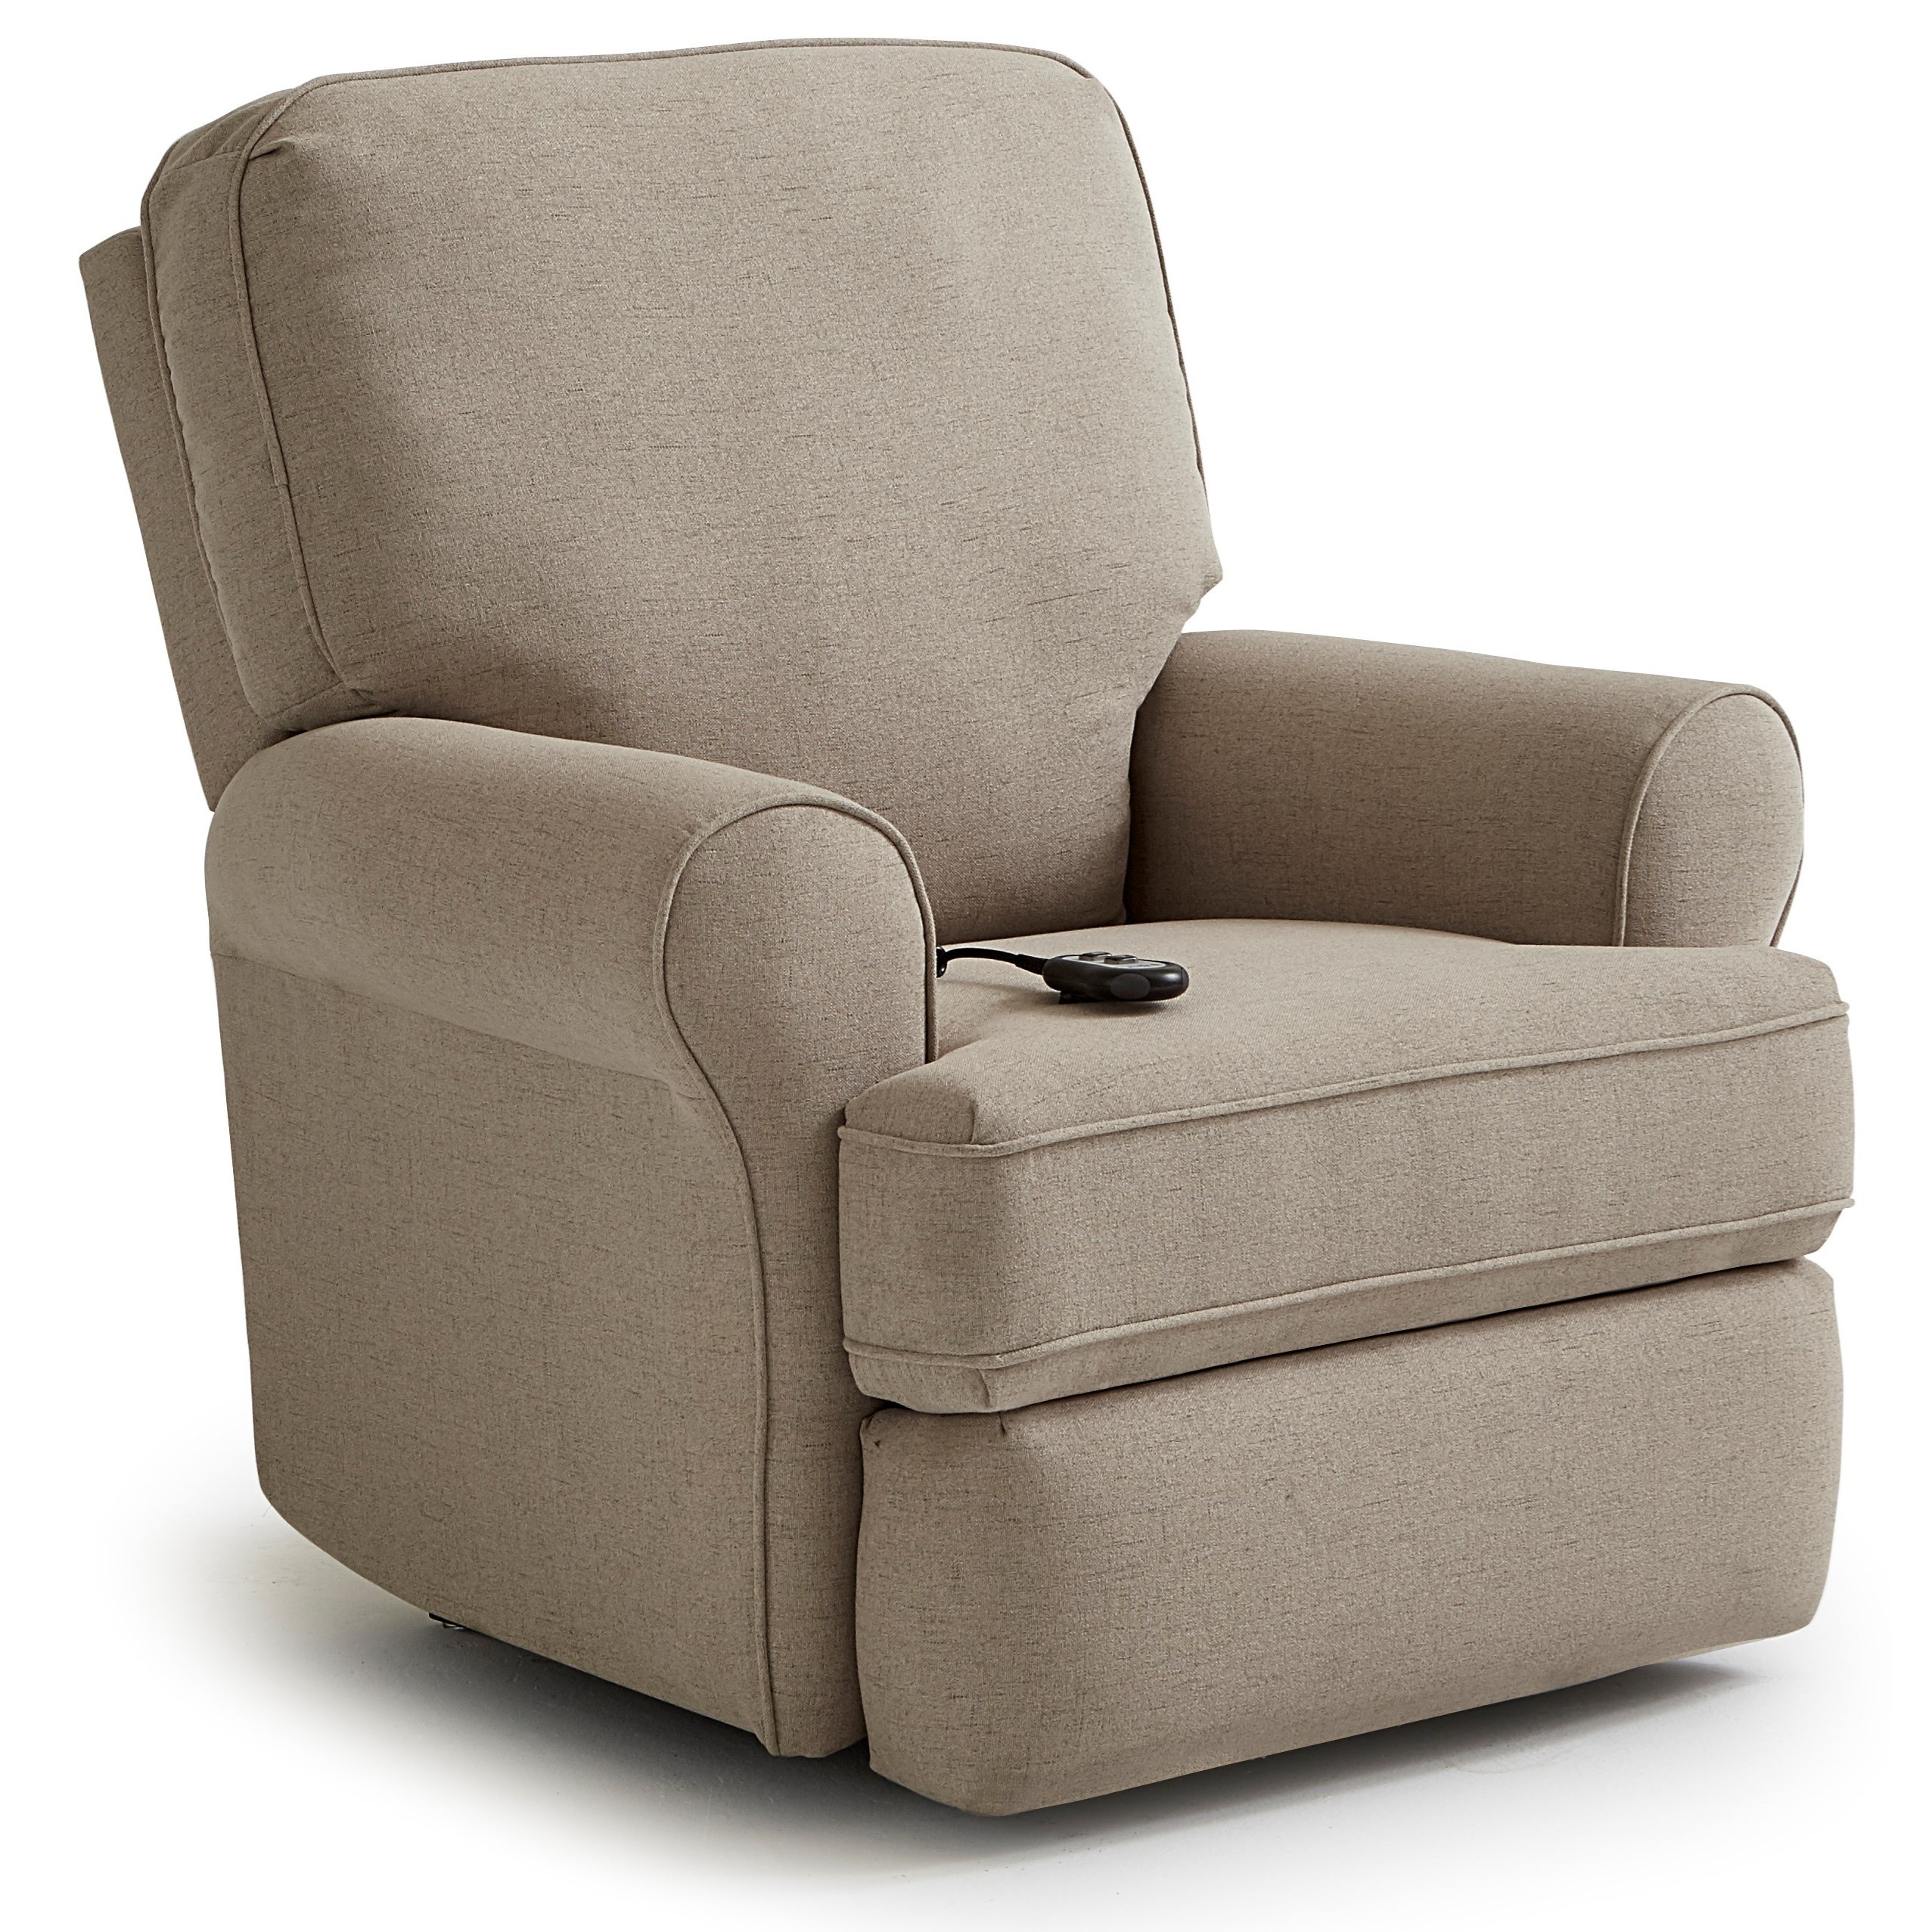 Lift Chair Recliners Best Home Furnishings Medium Recliners 5ni21 Tryp Power